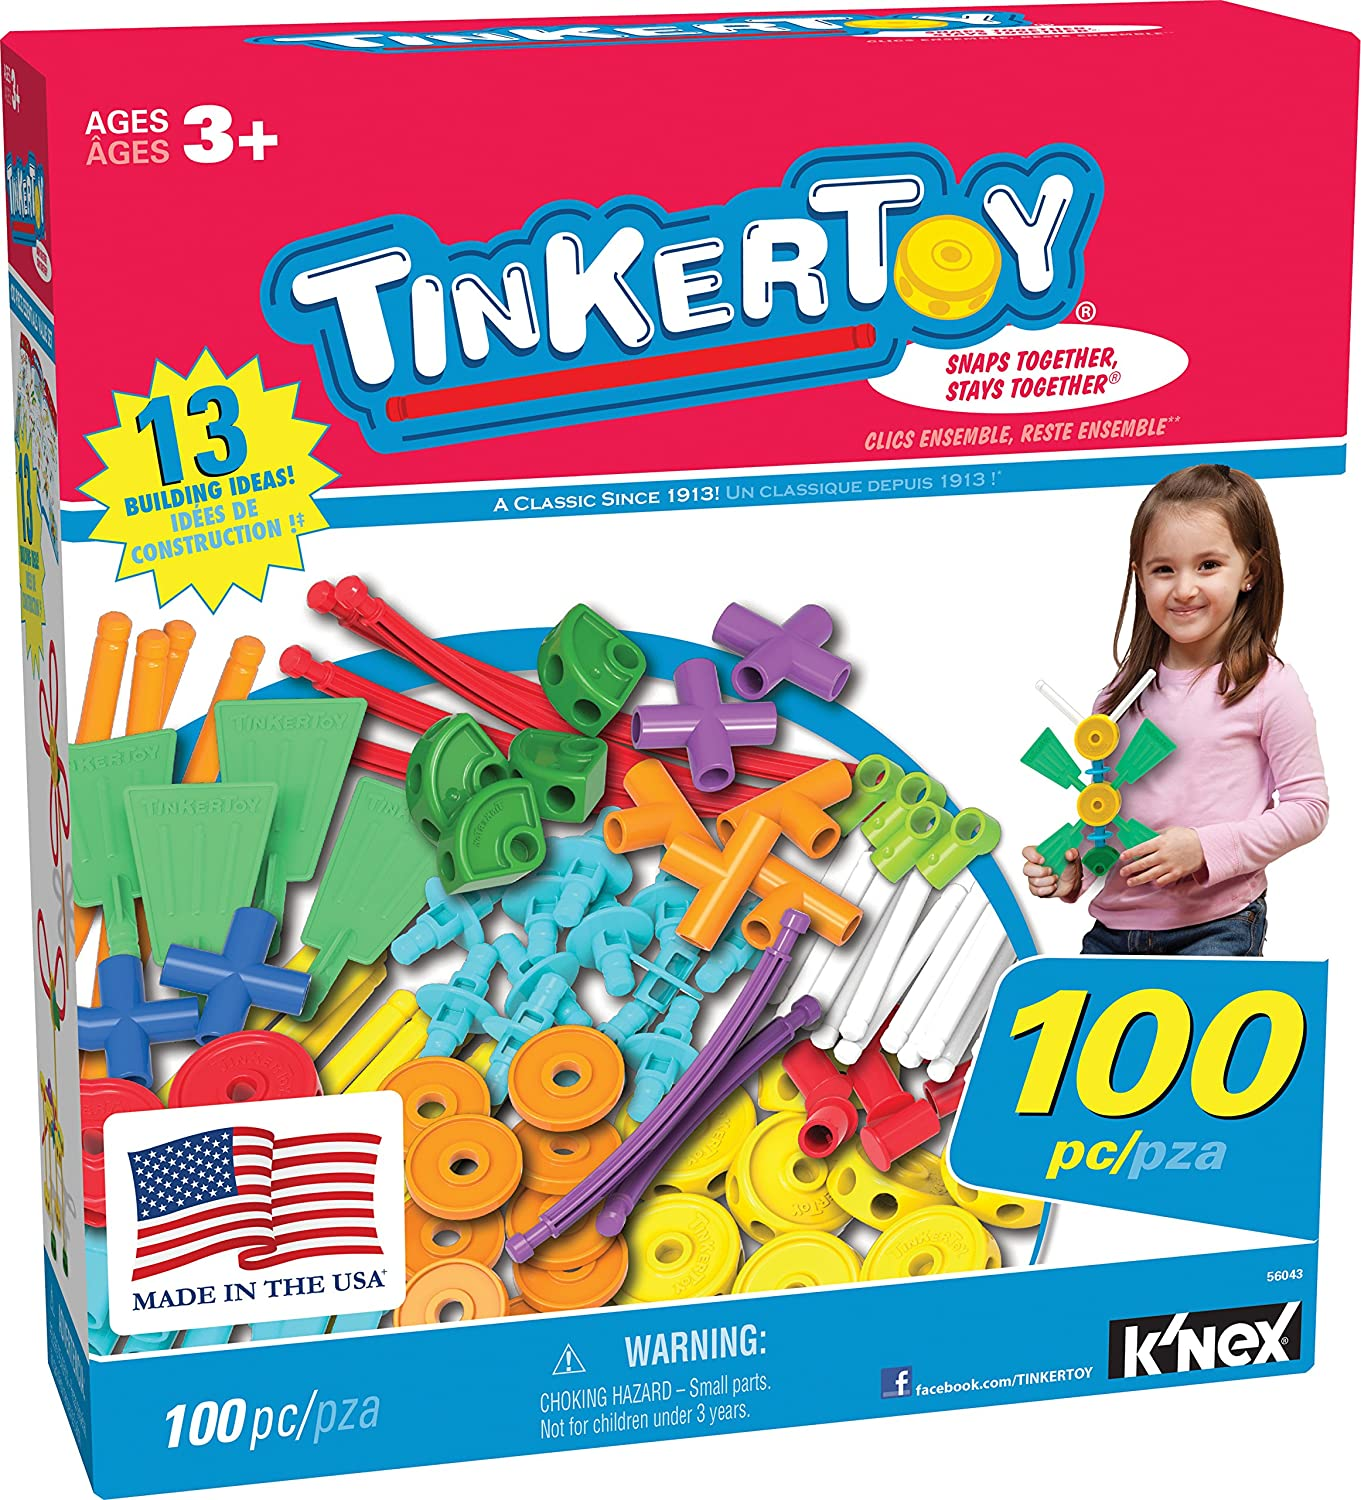 TINKERTOY ‒ 100 Piece Essentials Value Set ‒  Ages 3+ Preschool Education Toy K' NEX 56043